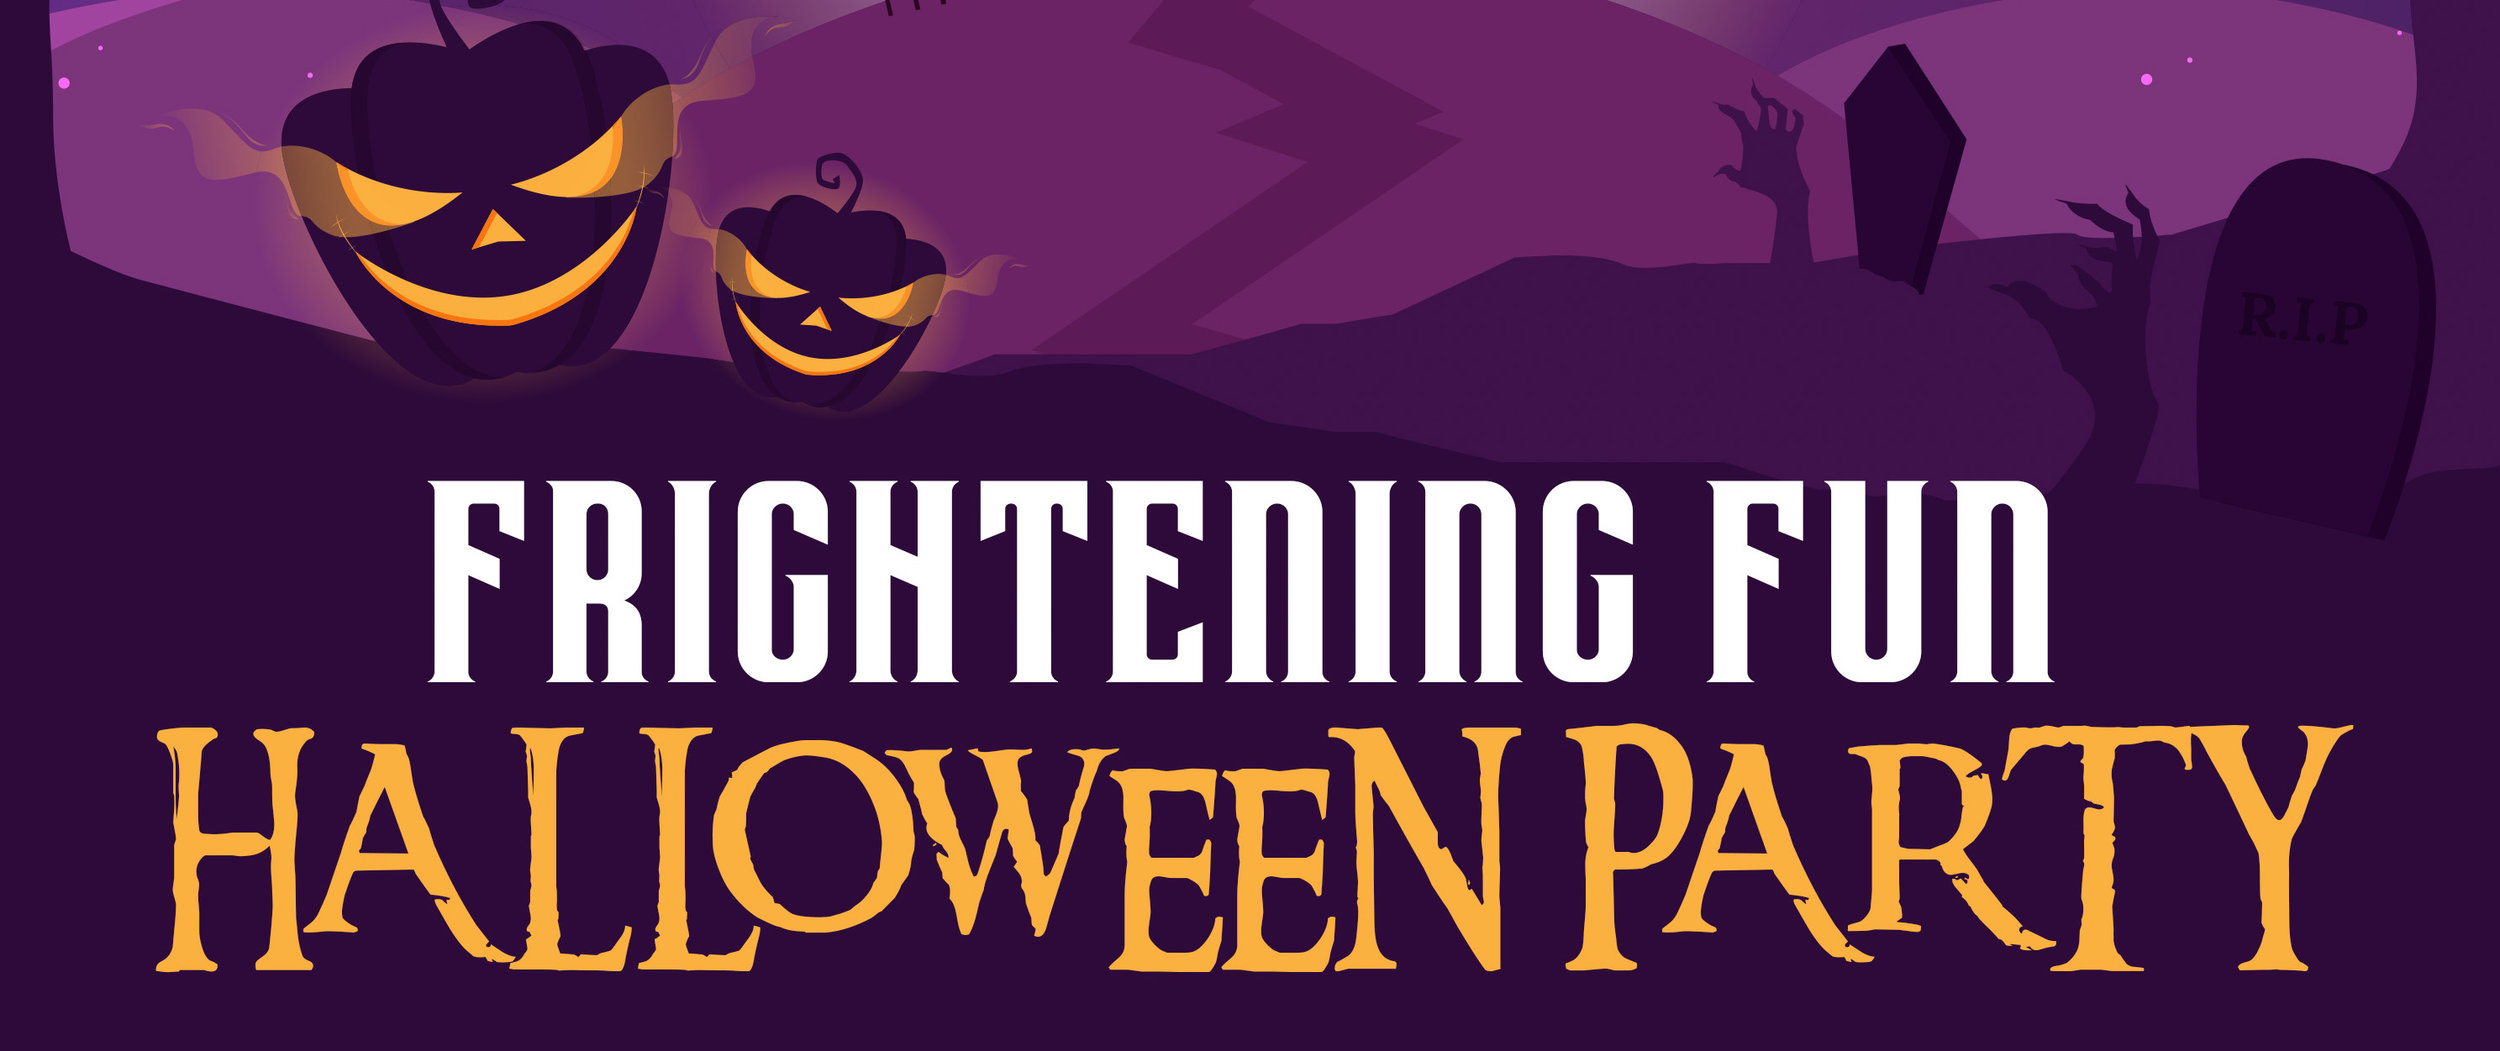 Frightening Fun Halloween Party.jpg